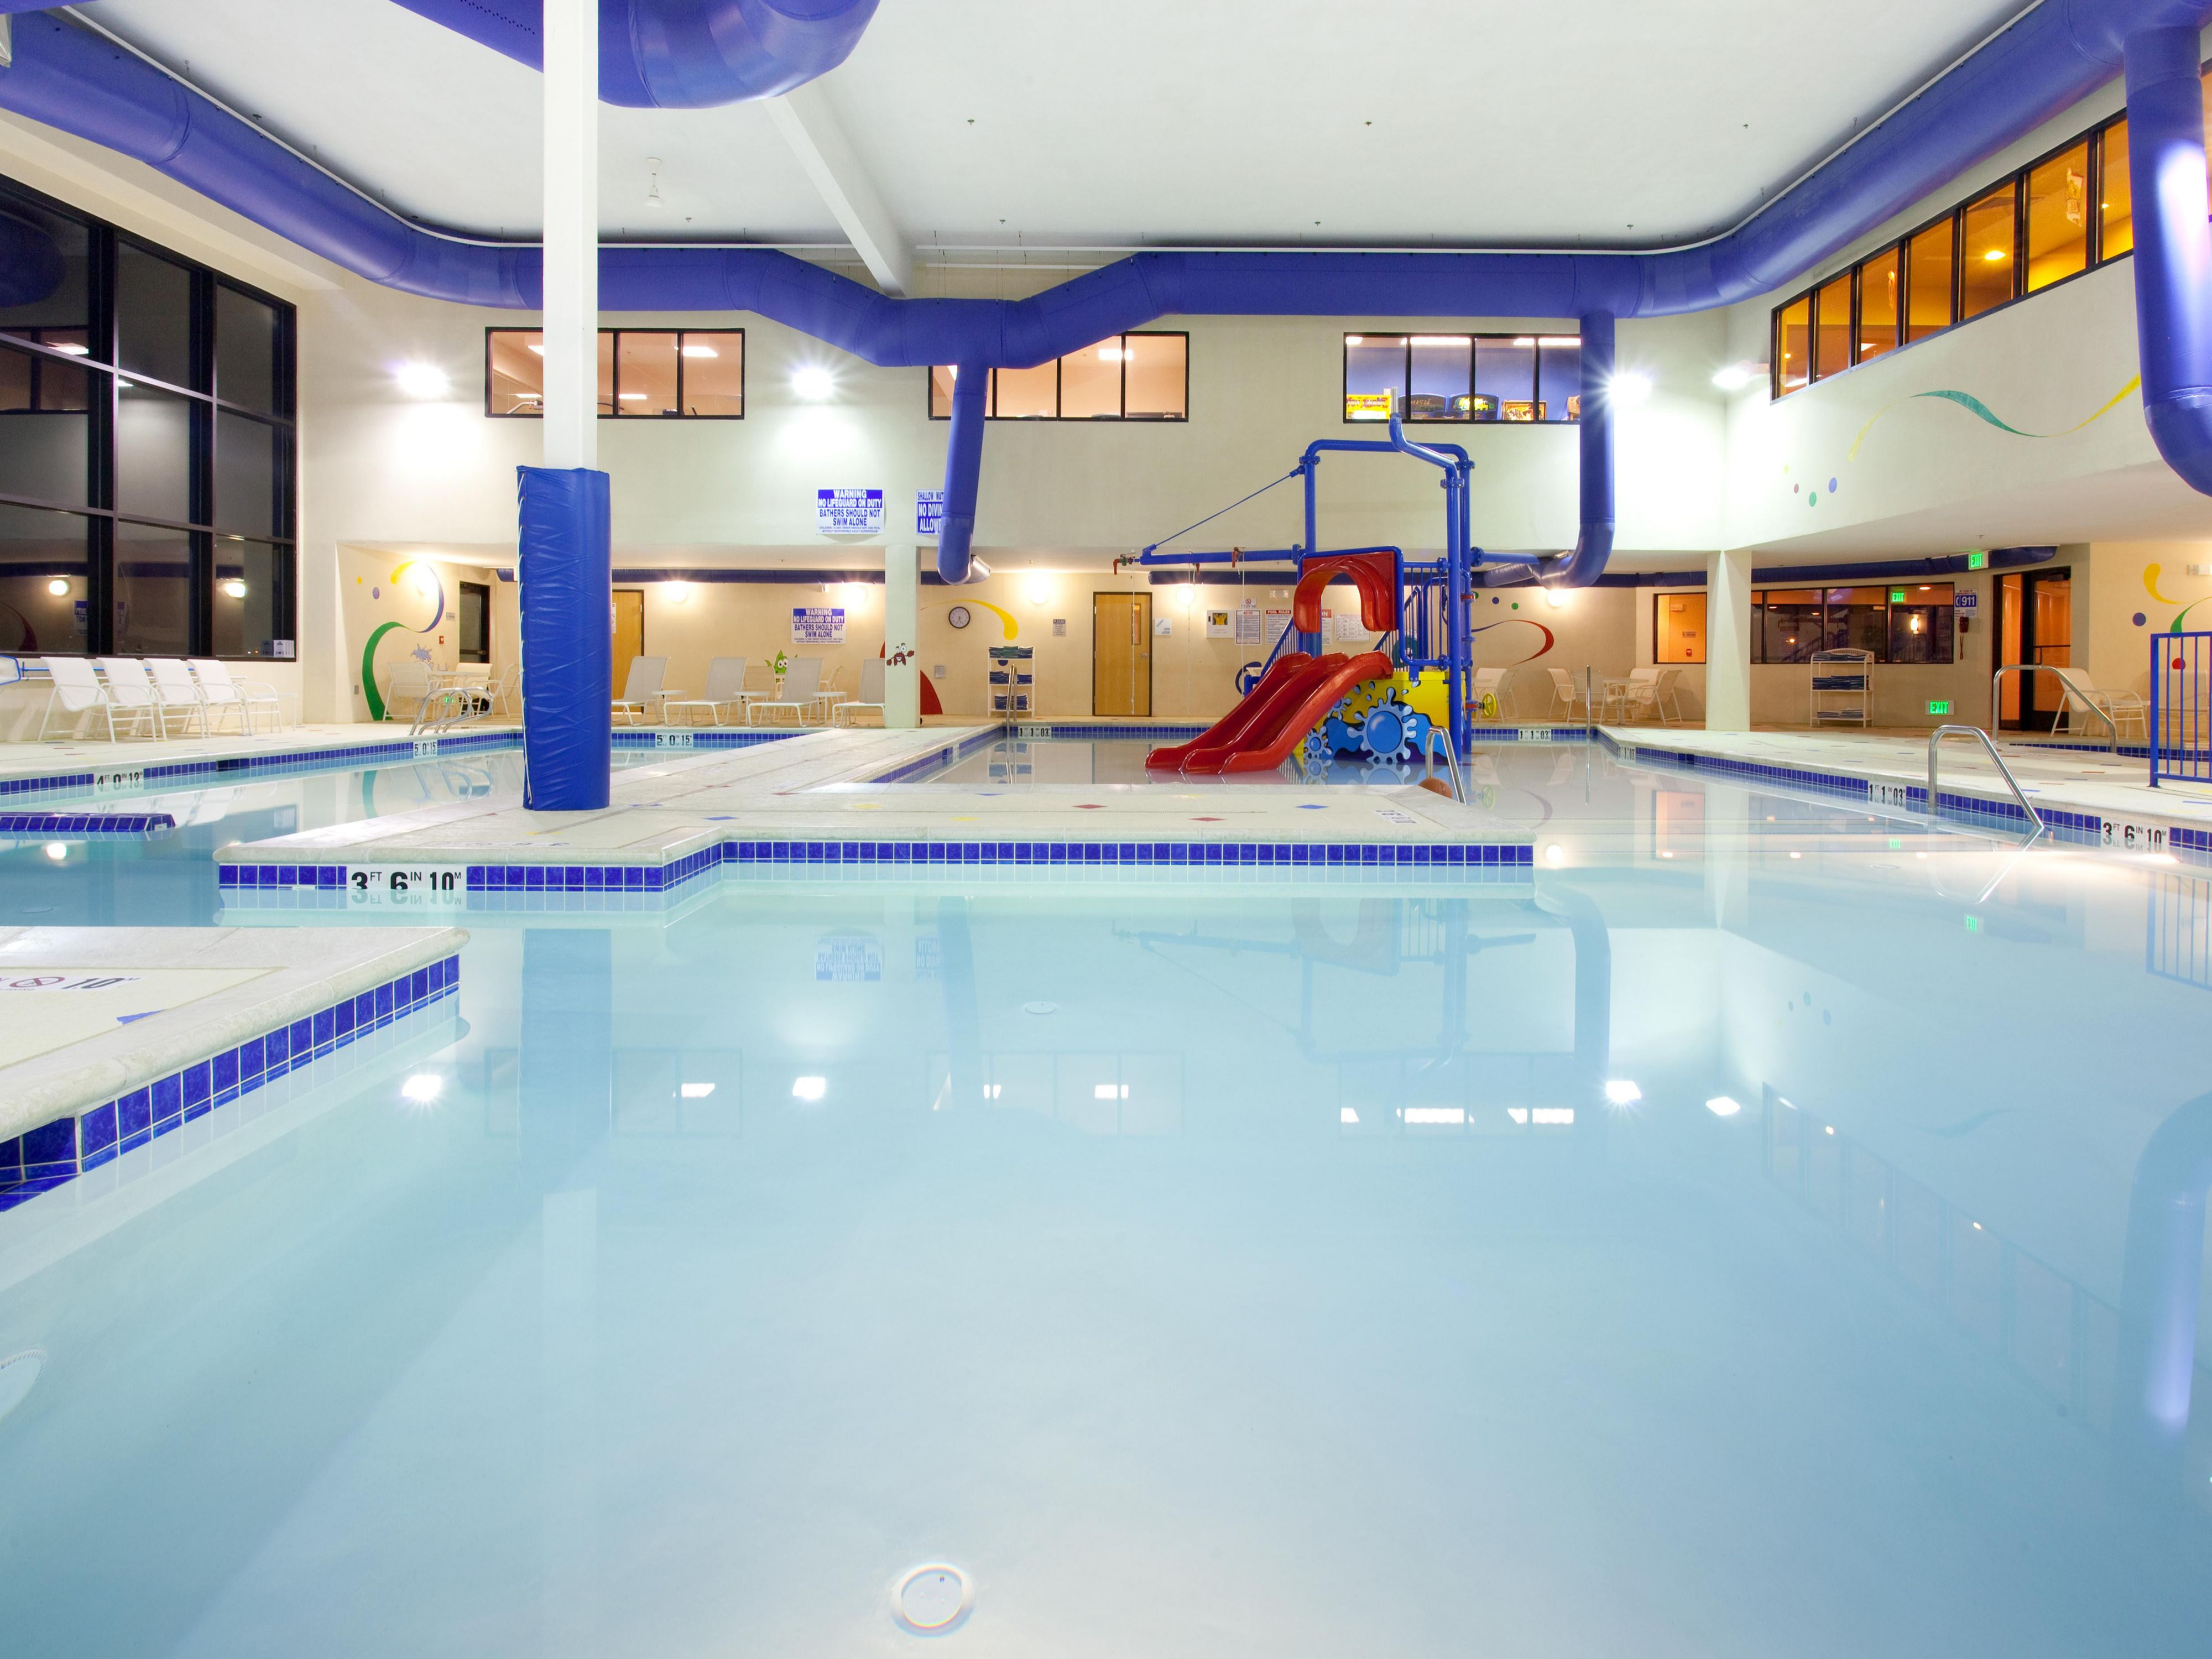 Grins & Fins Water Park includes 3 heated indoor pools